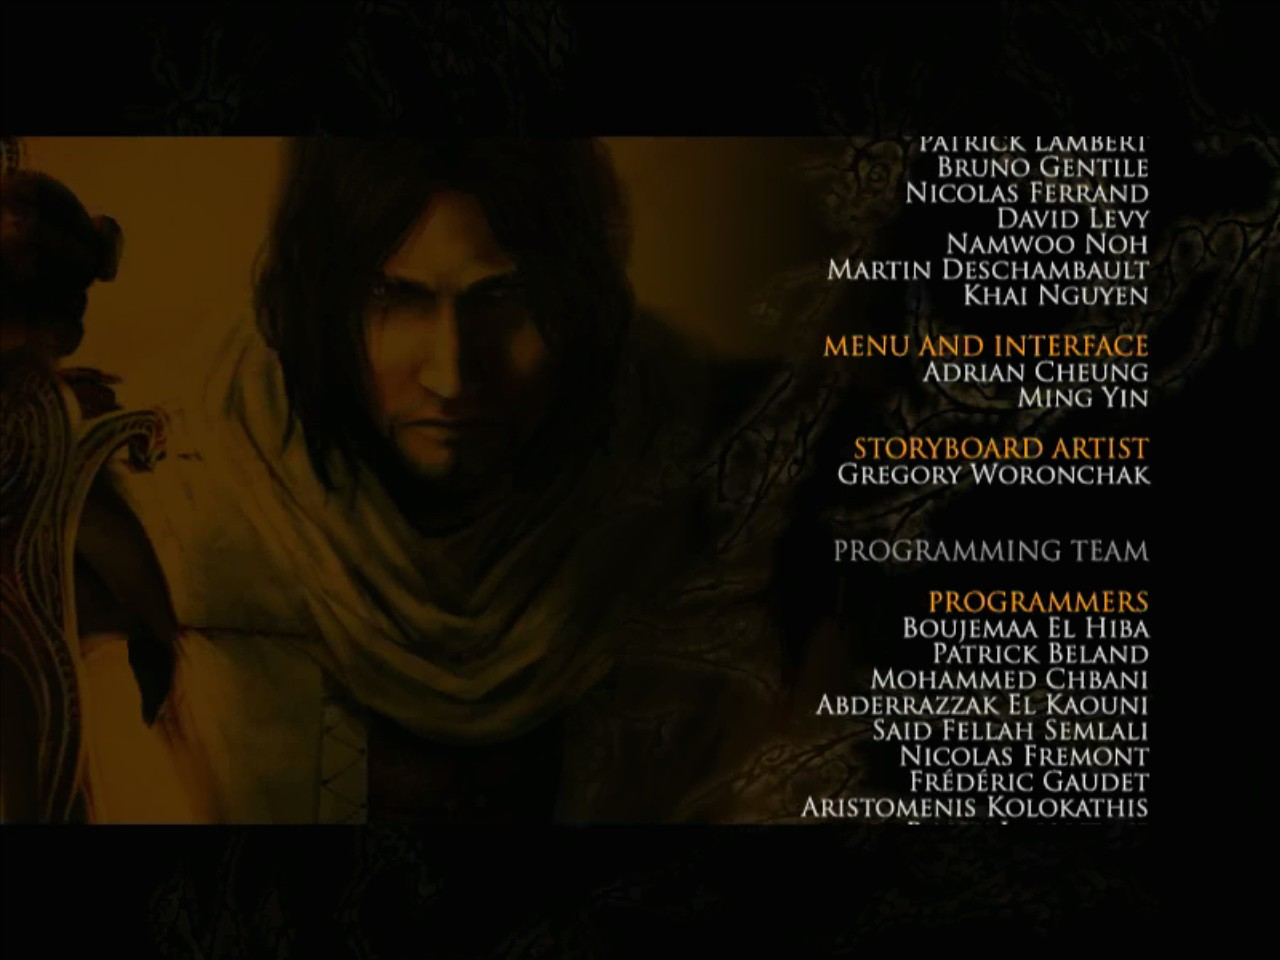 POP3 2014-06-01 22-38-52-57.jpg - Prince of Persia: The Two Thrones